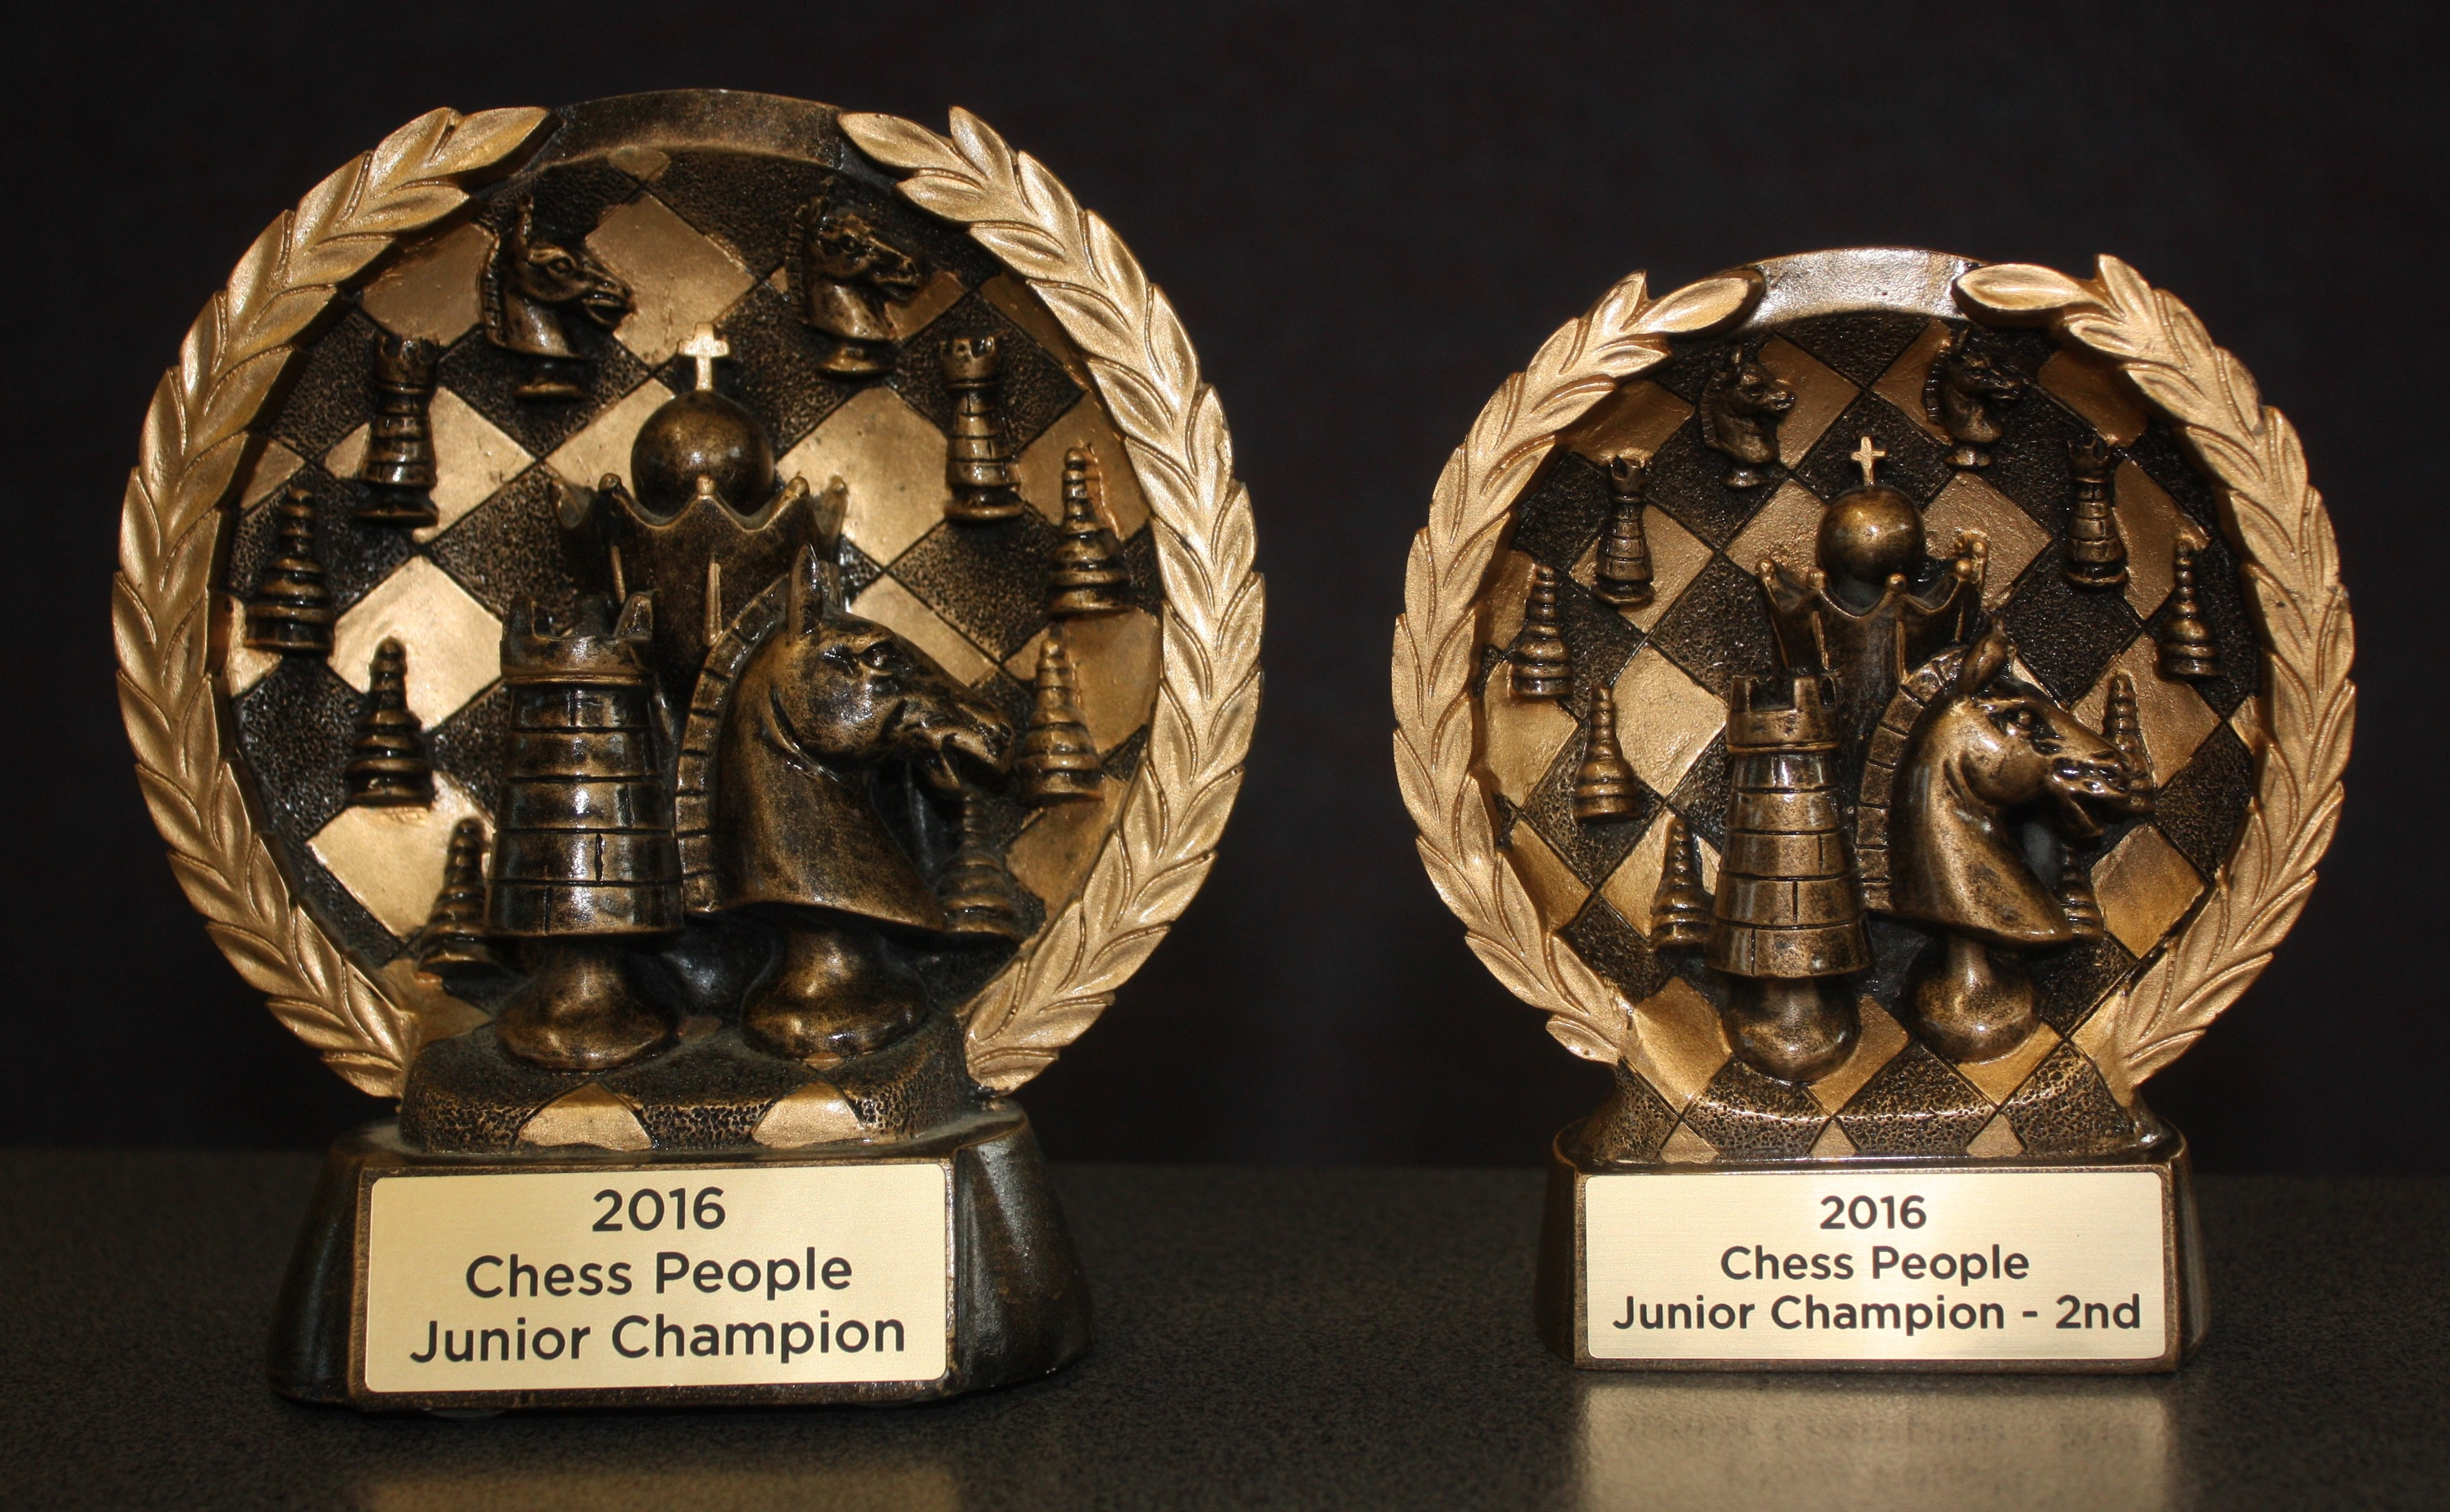 Chess People Trophies